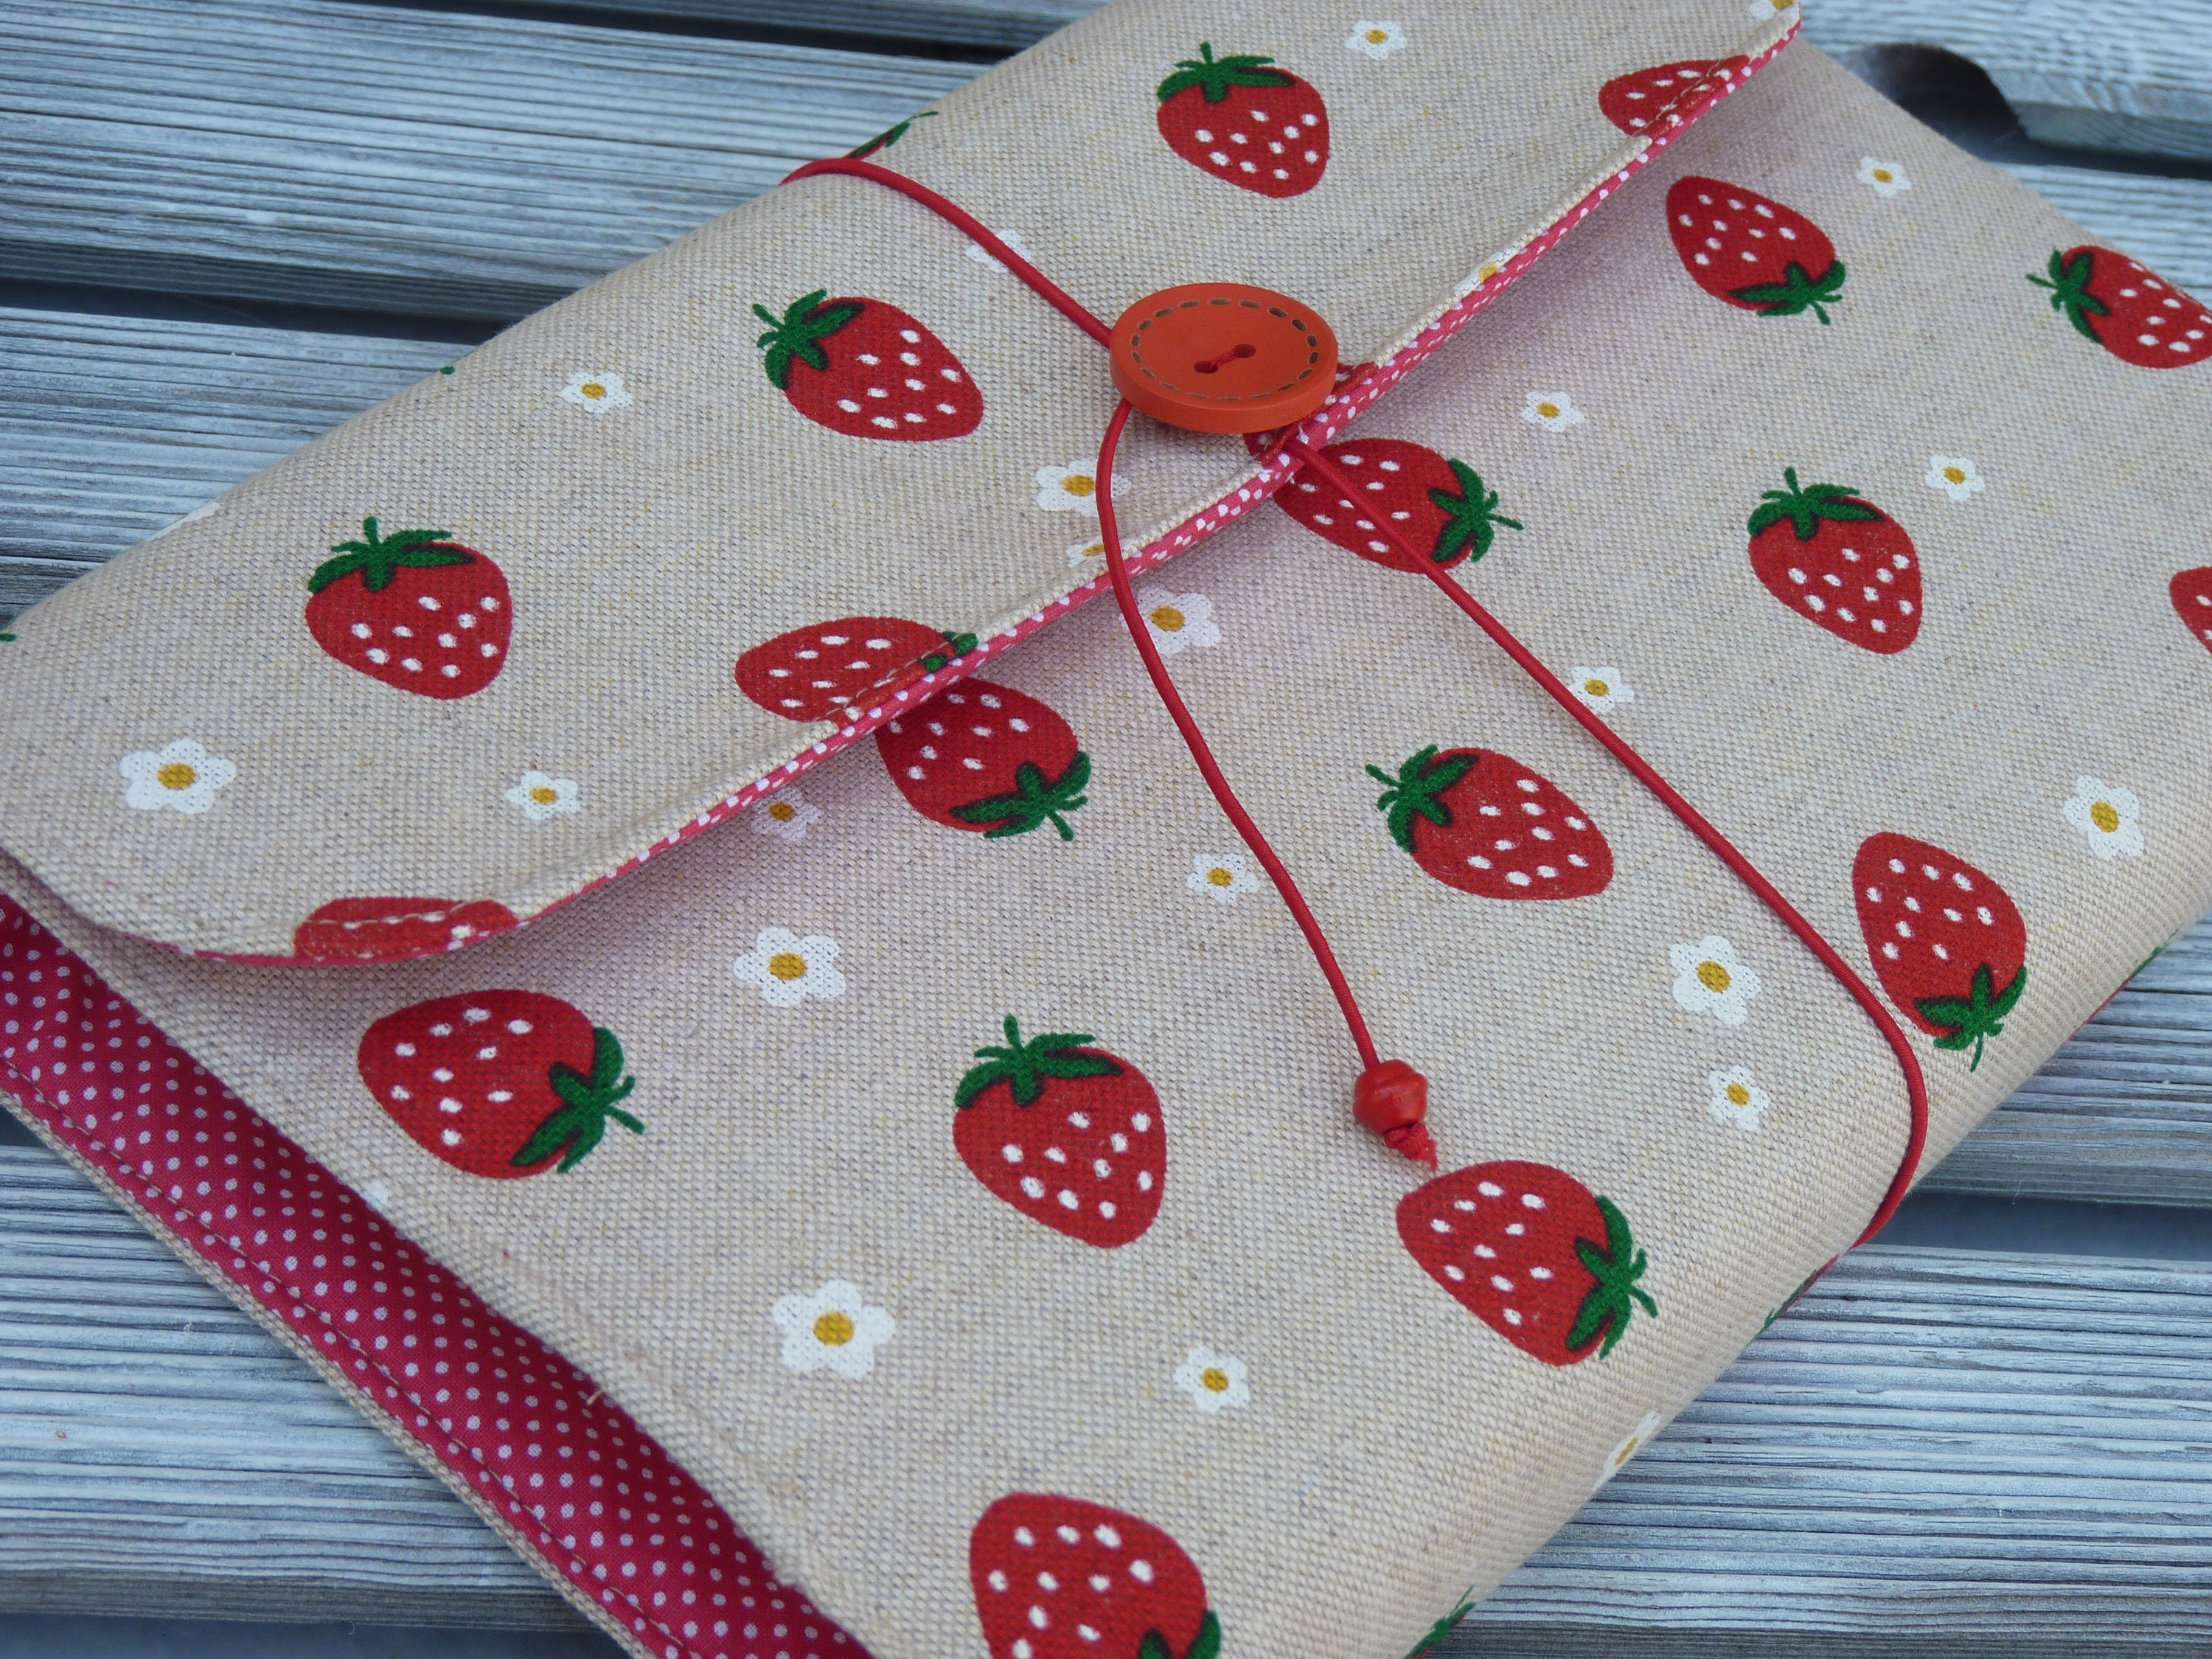 Adjustable Fabric Book Cover : Book sleeve strawberry fabric cover adjustable